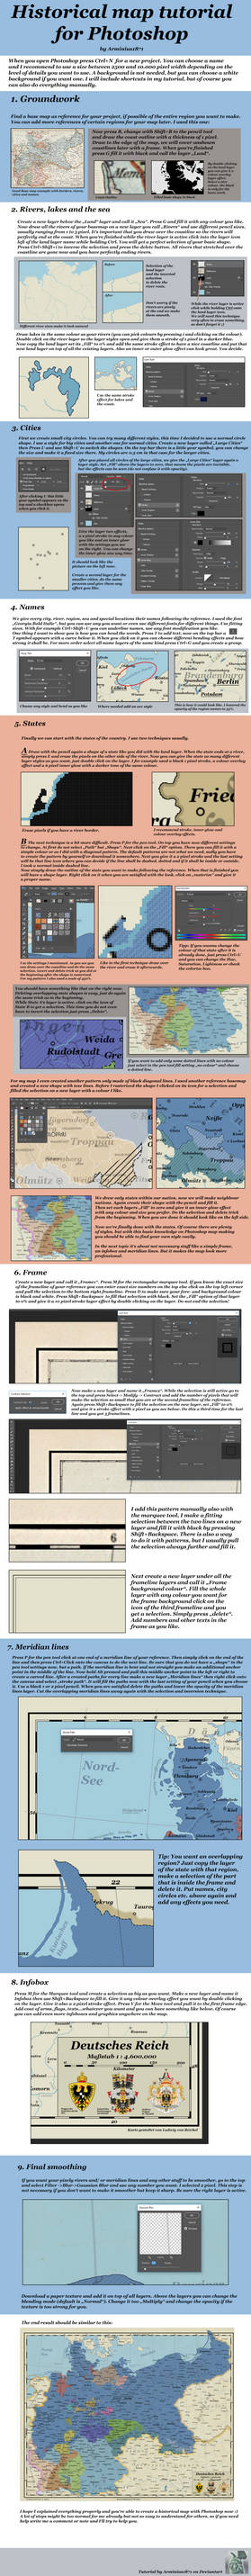 Historical Map Tutorial for Photoshop by Arminius1871 on